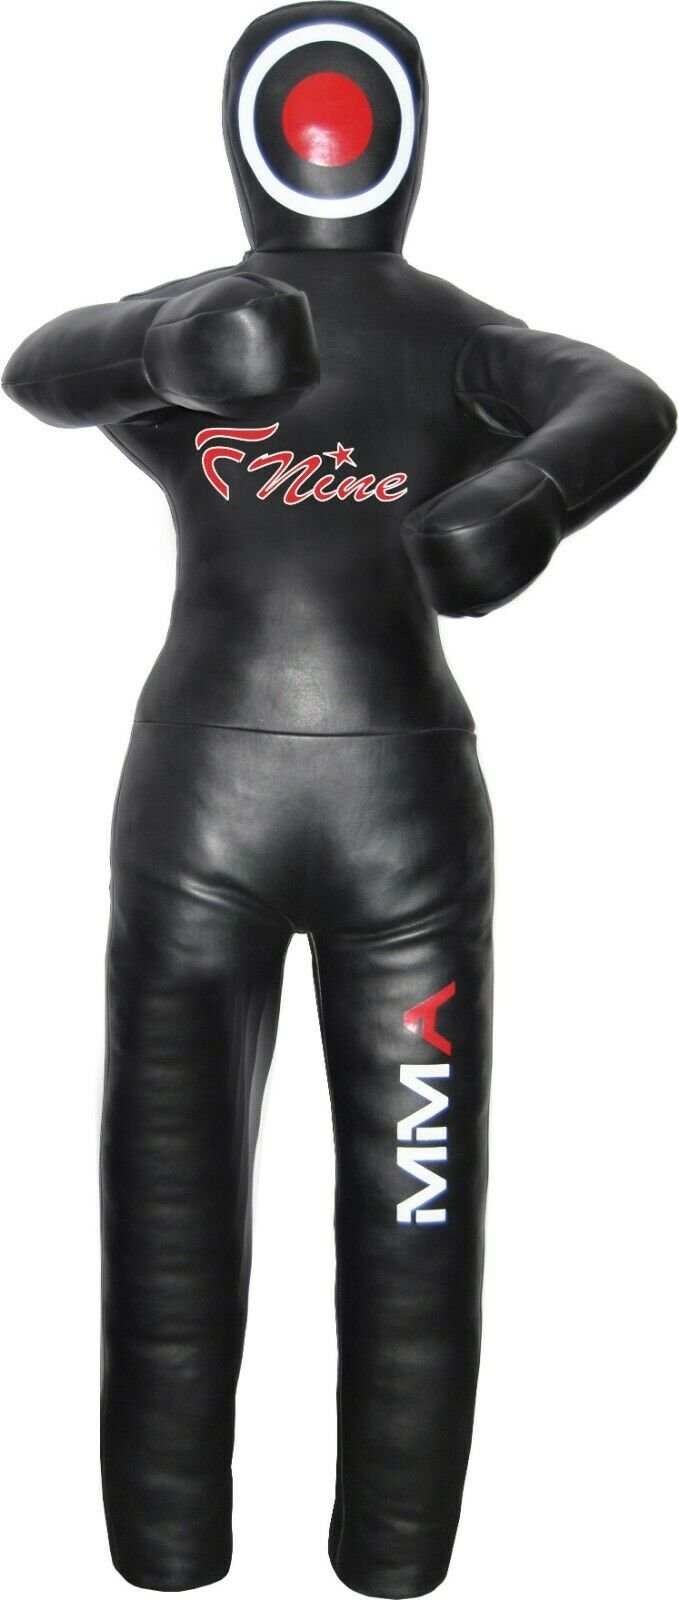 FNine Grappling Dummy MMA Wrestling Punch  Bag Judo Martial Arts unfilled  we take customers as our god